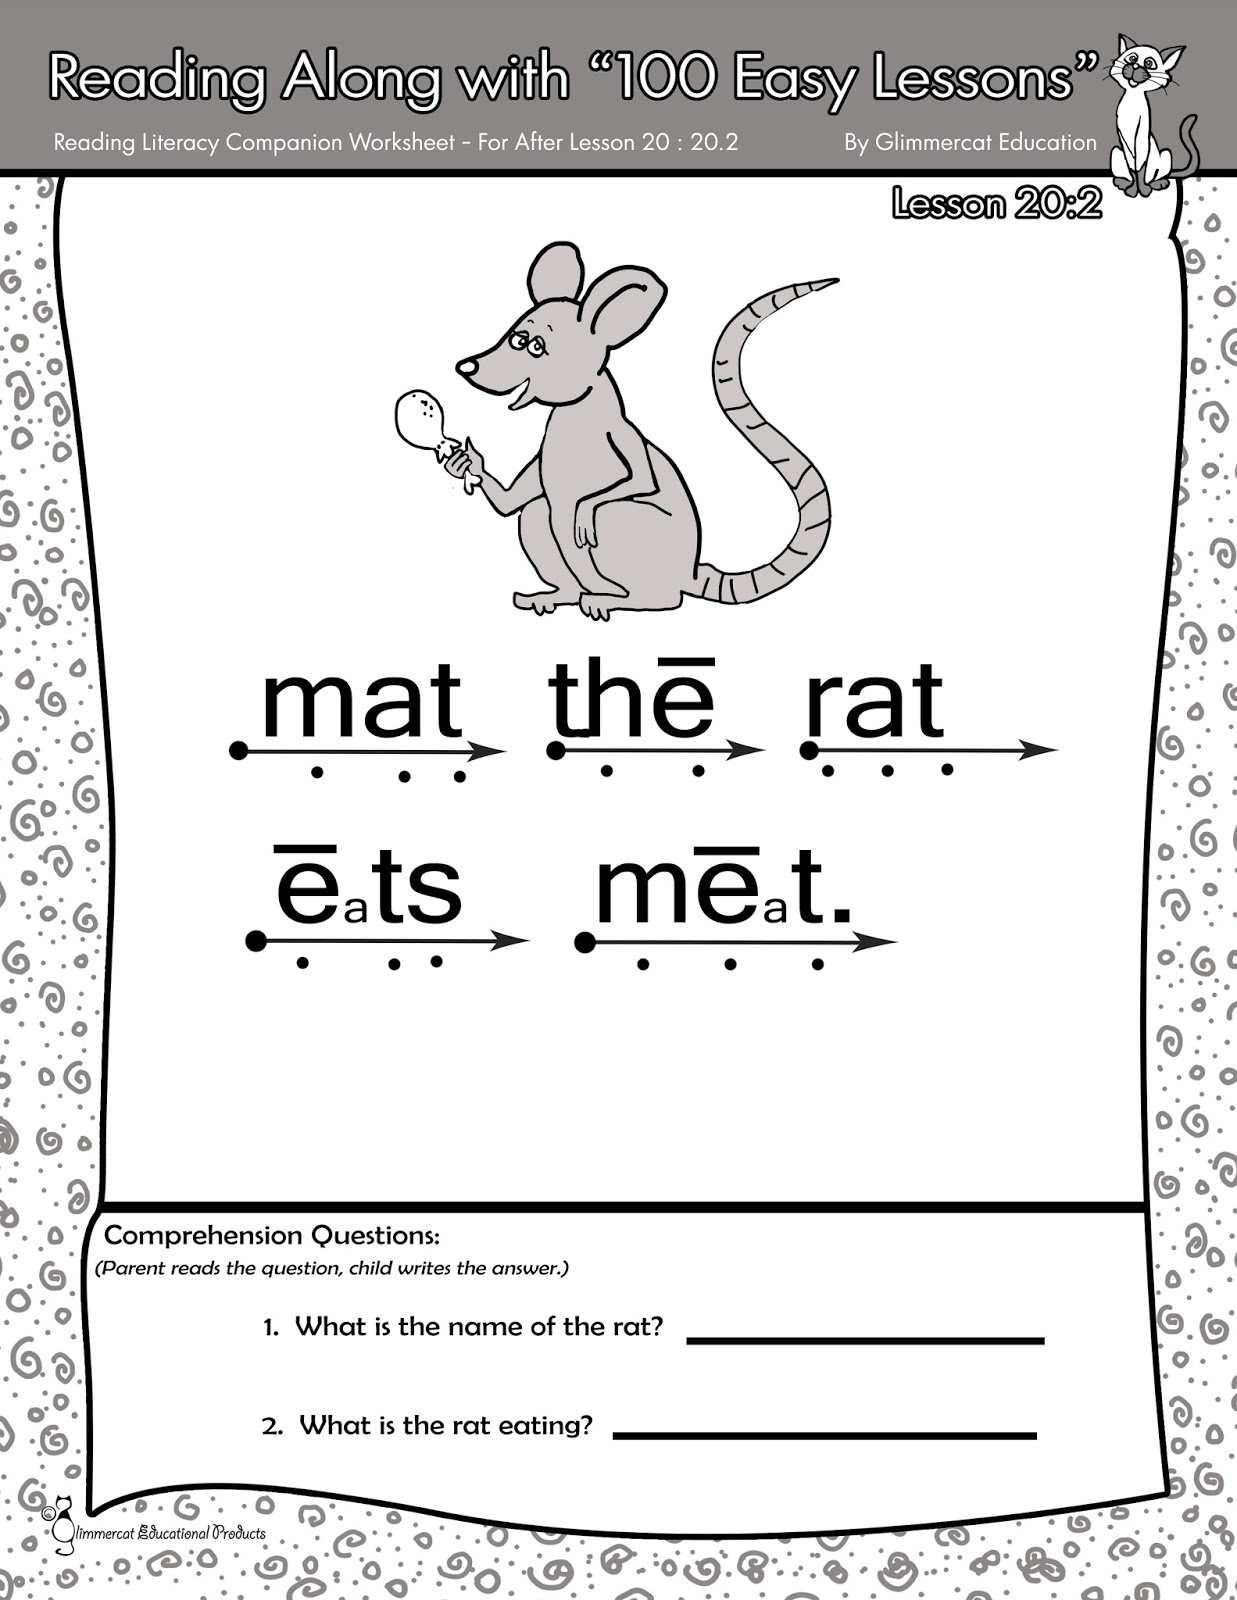 Printables Teach Your Child To Read In 100 Easy Lessons Worksheets glimmercat supplemental activities for teach your child to read if youre not exactly sure what looking at there that is a mat the rat craft from one of my free